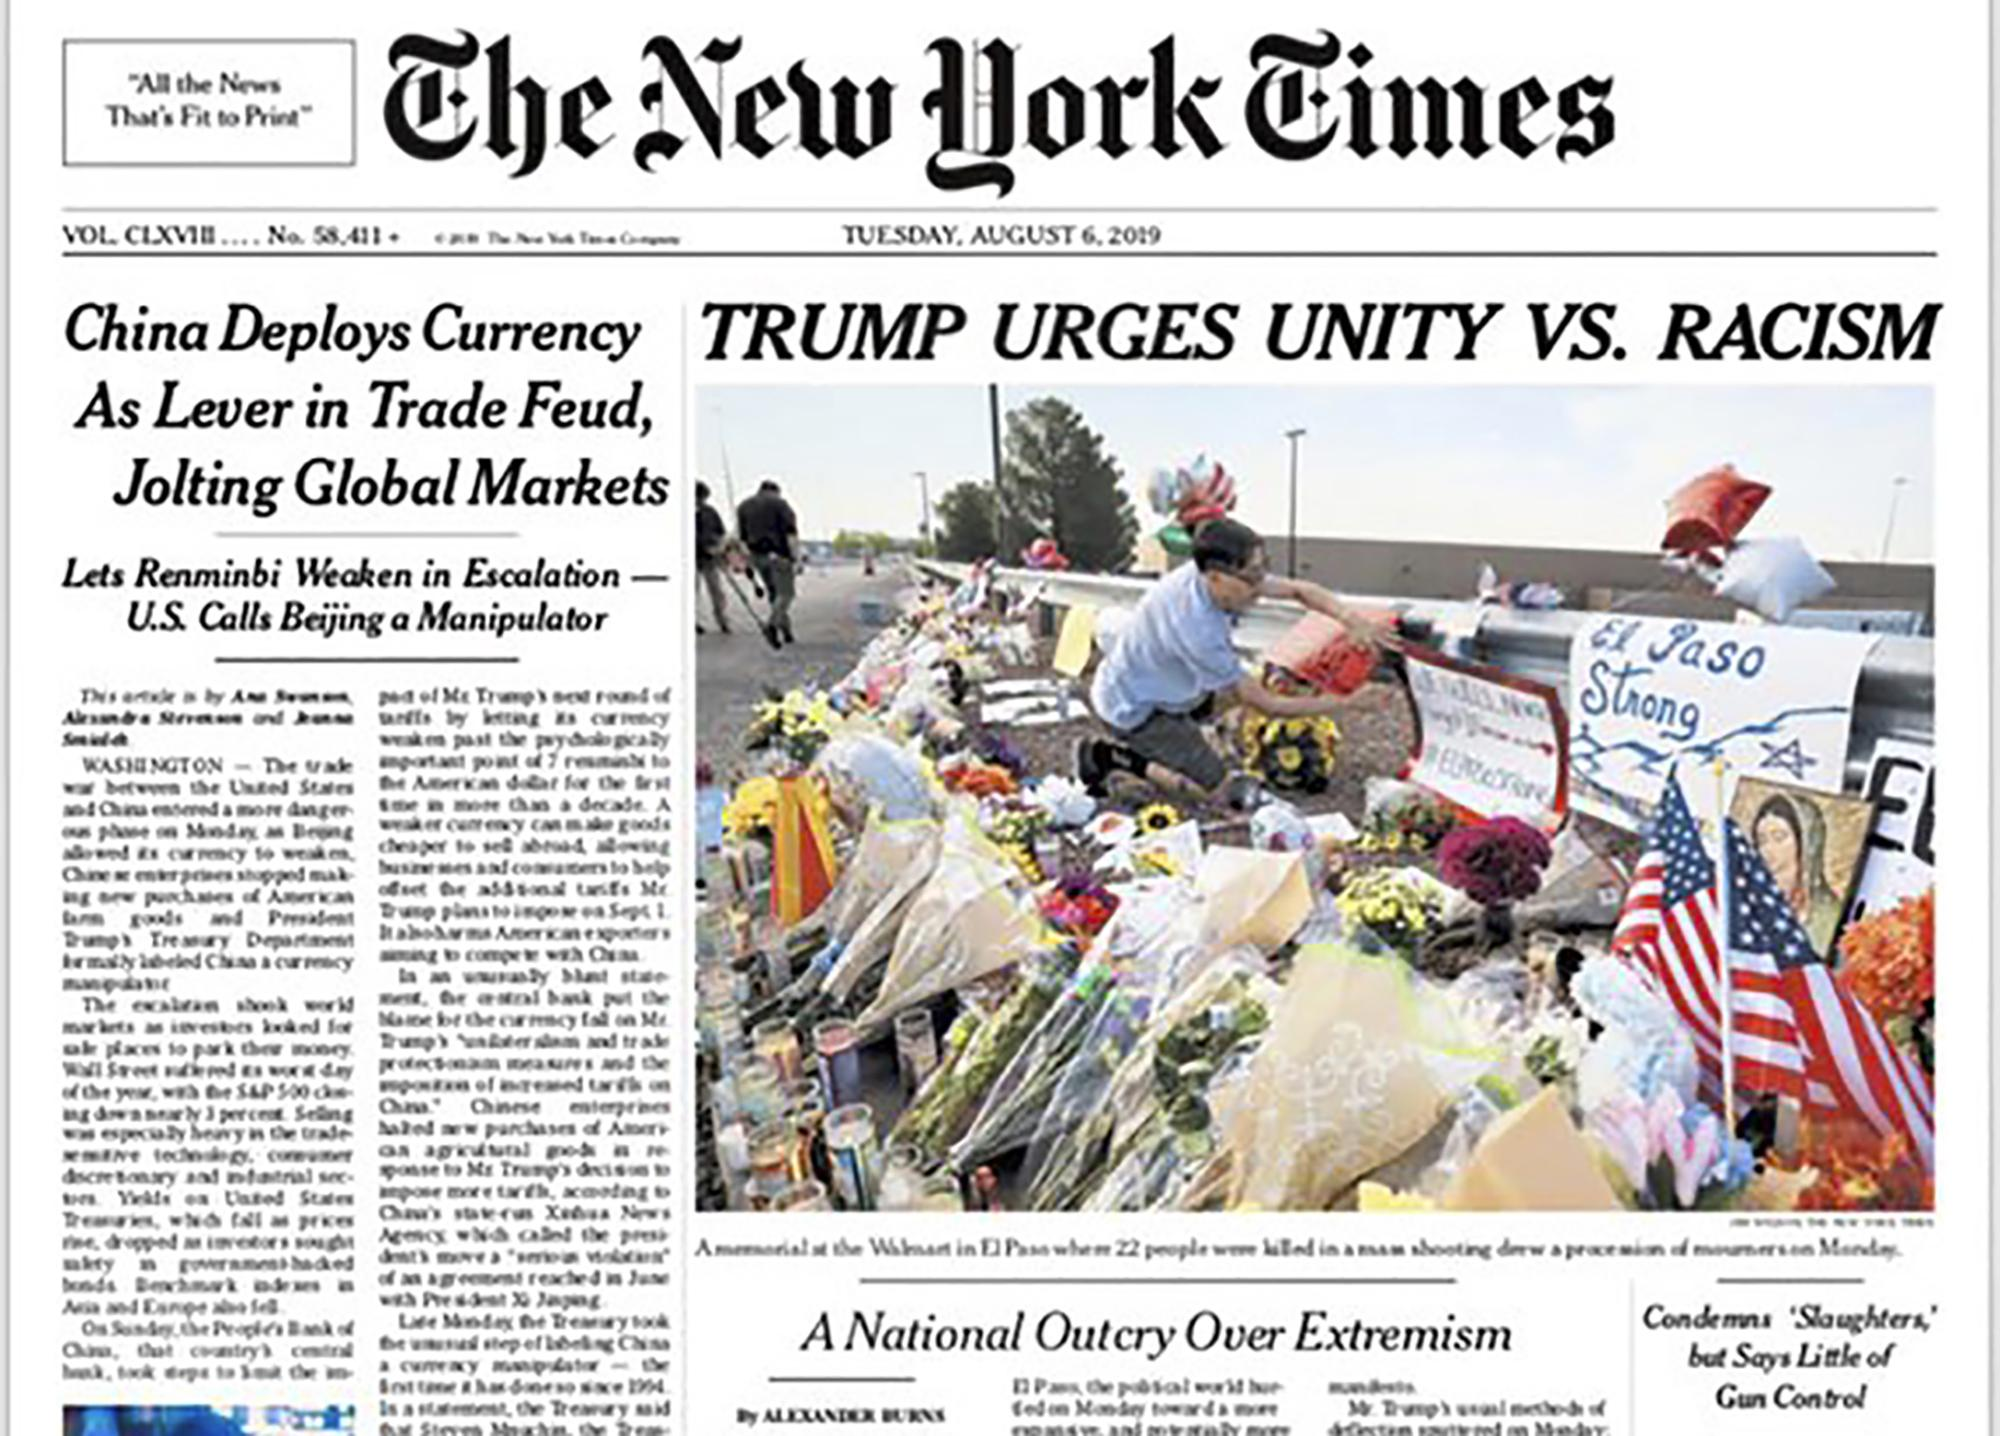 The Nation warns progressives that The New York Times 'won't save us from Trump'